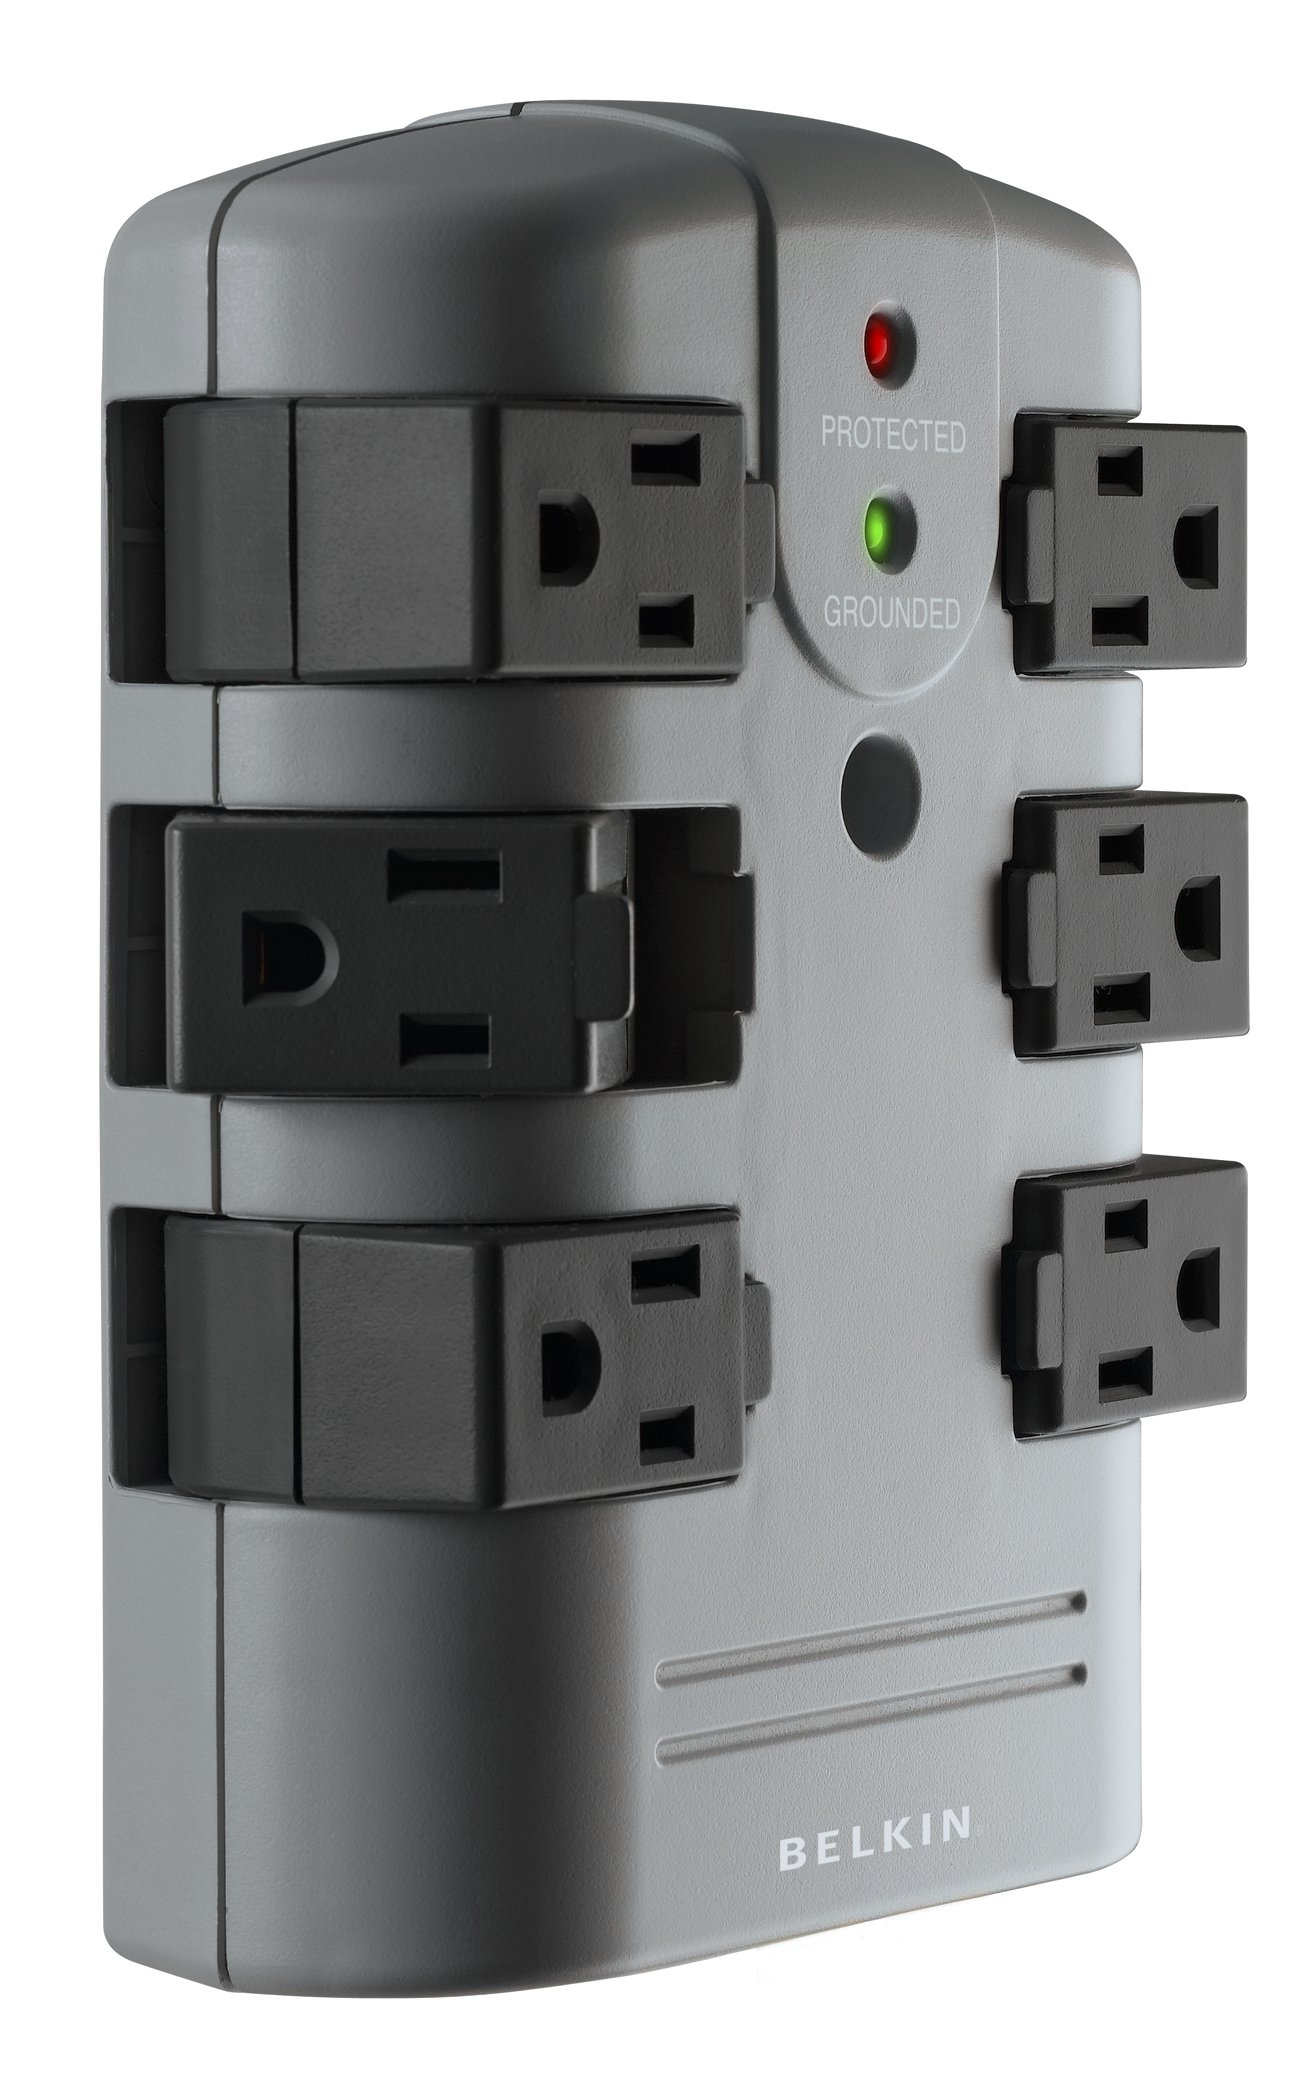 Belkin 6-Outlet Pivot-Plug Wall Mount Power Strip Surge Protector, 1080 Joules (BP106000)